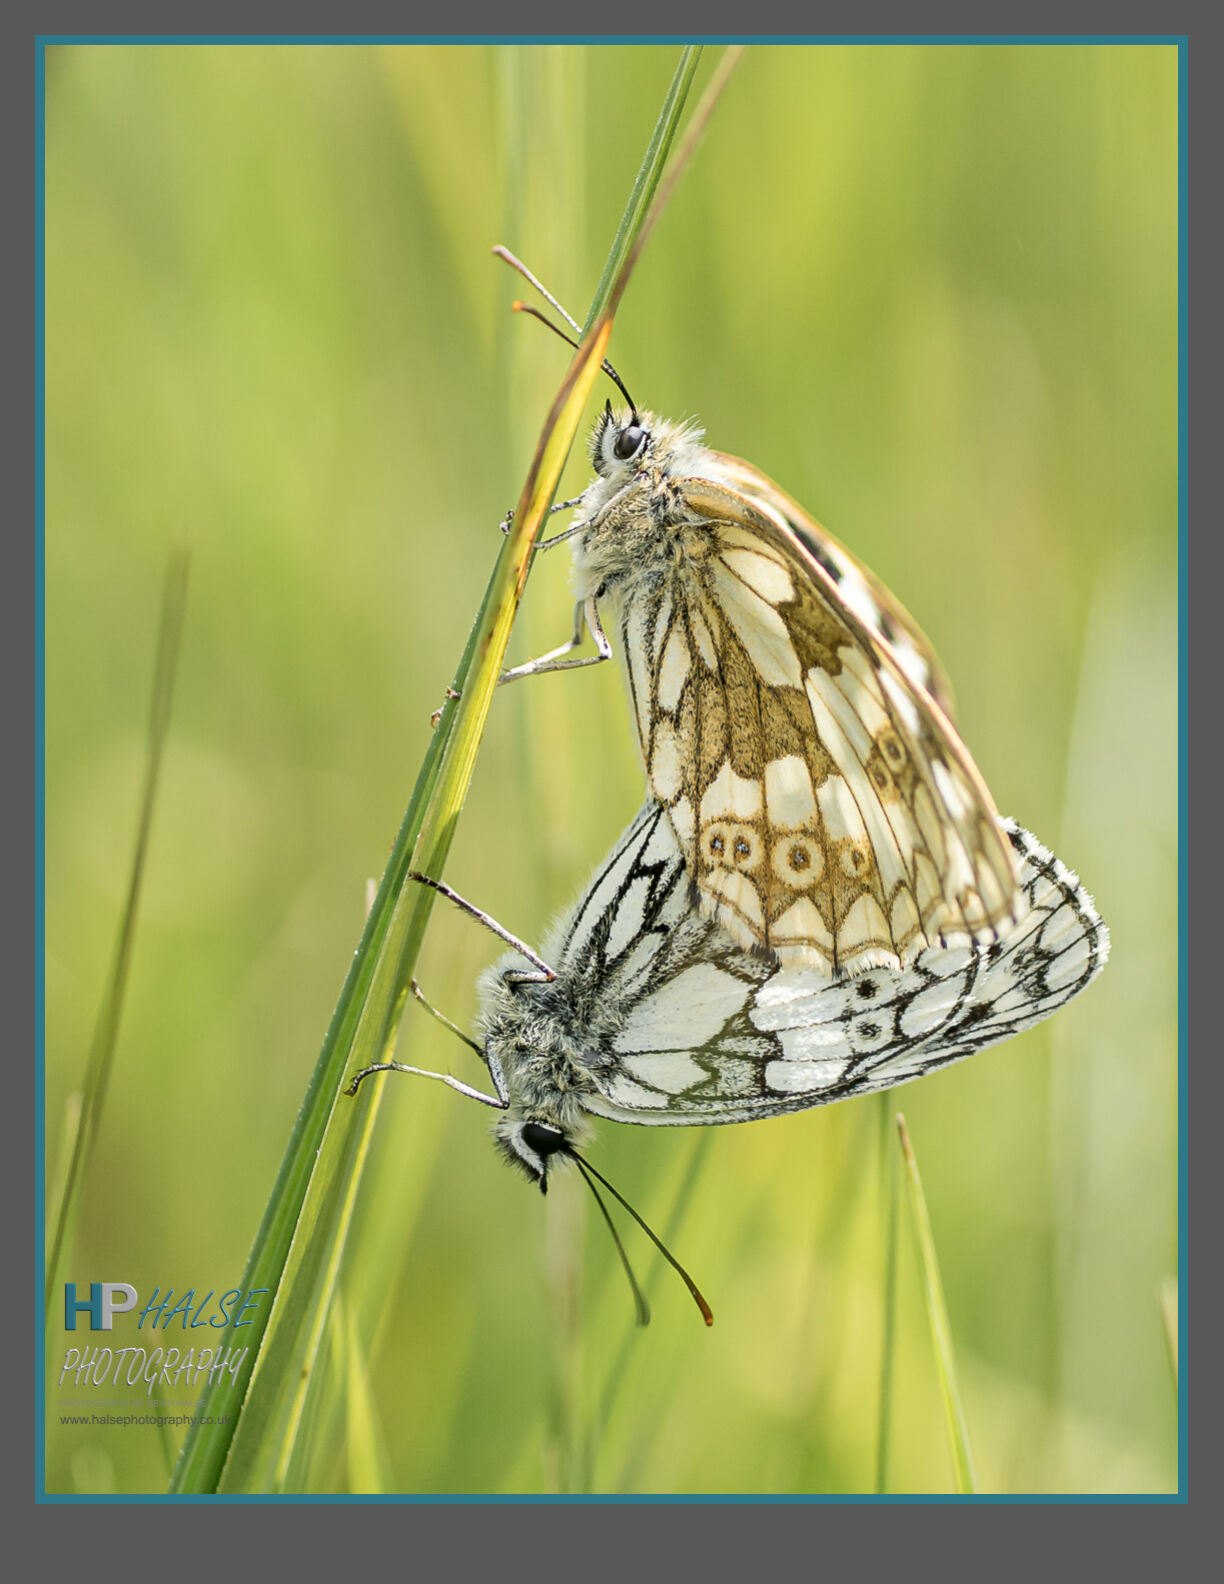 001 Pair of Marbled White Butterflies